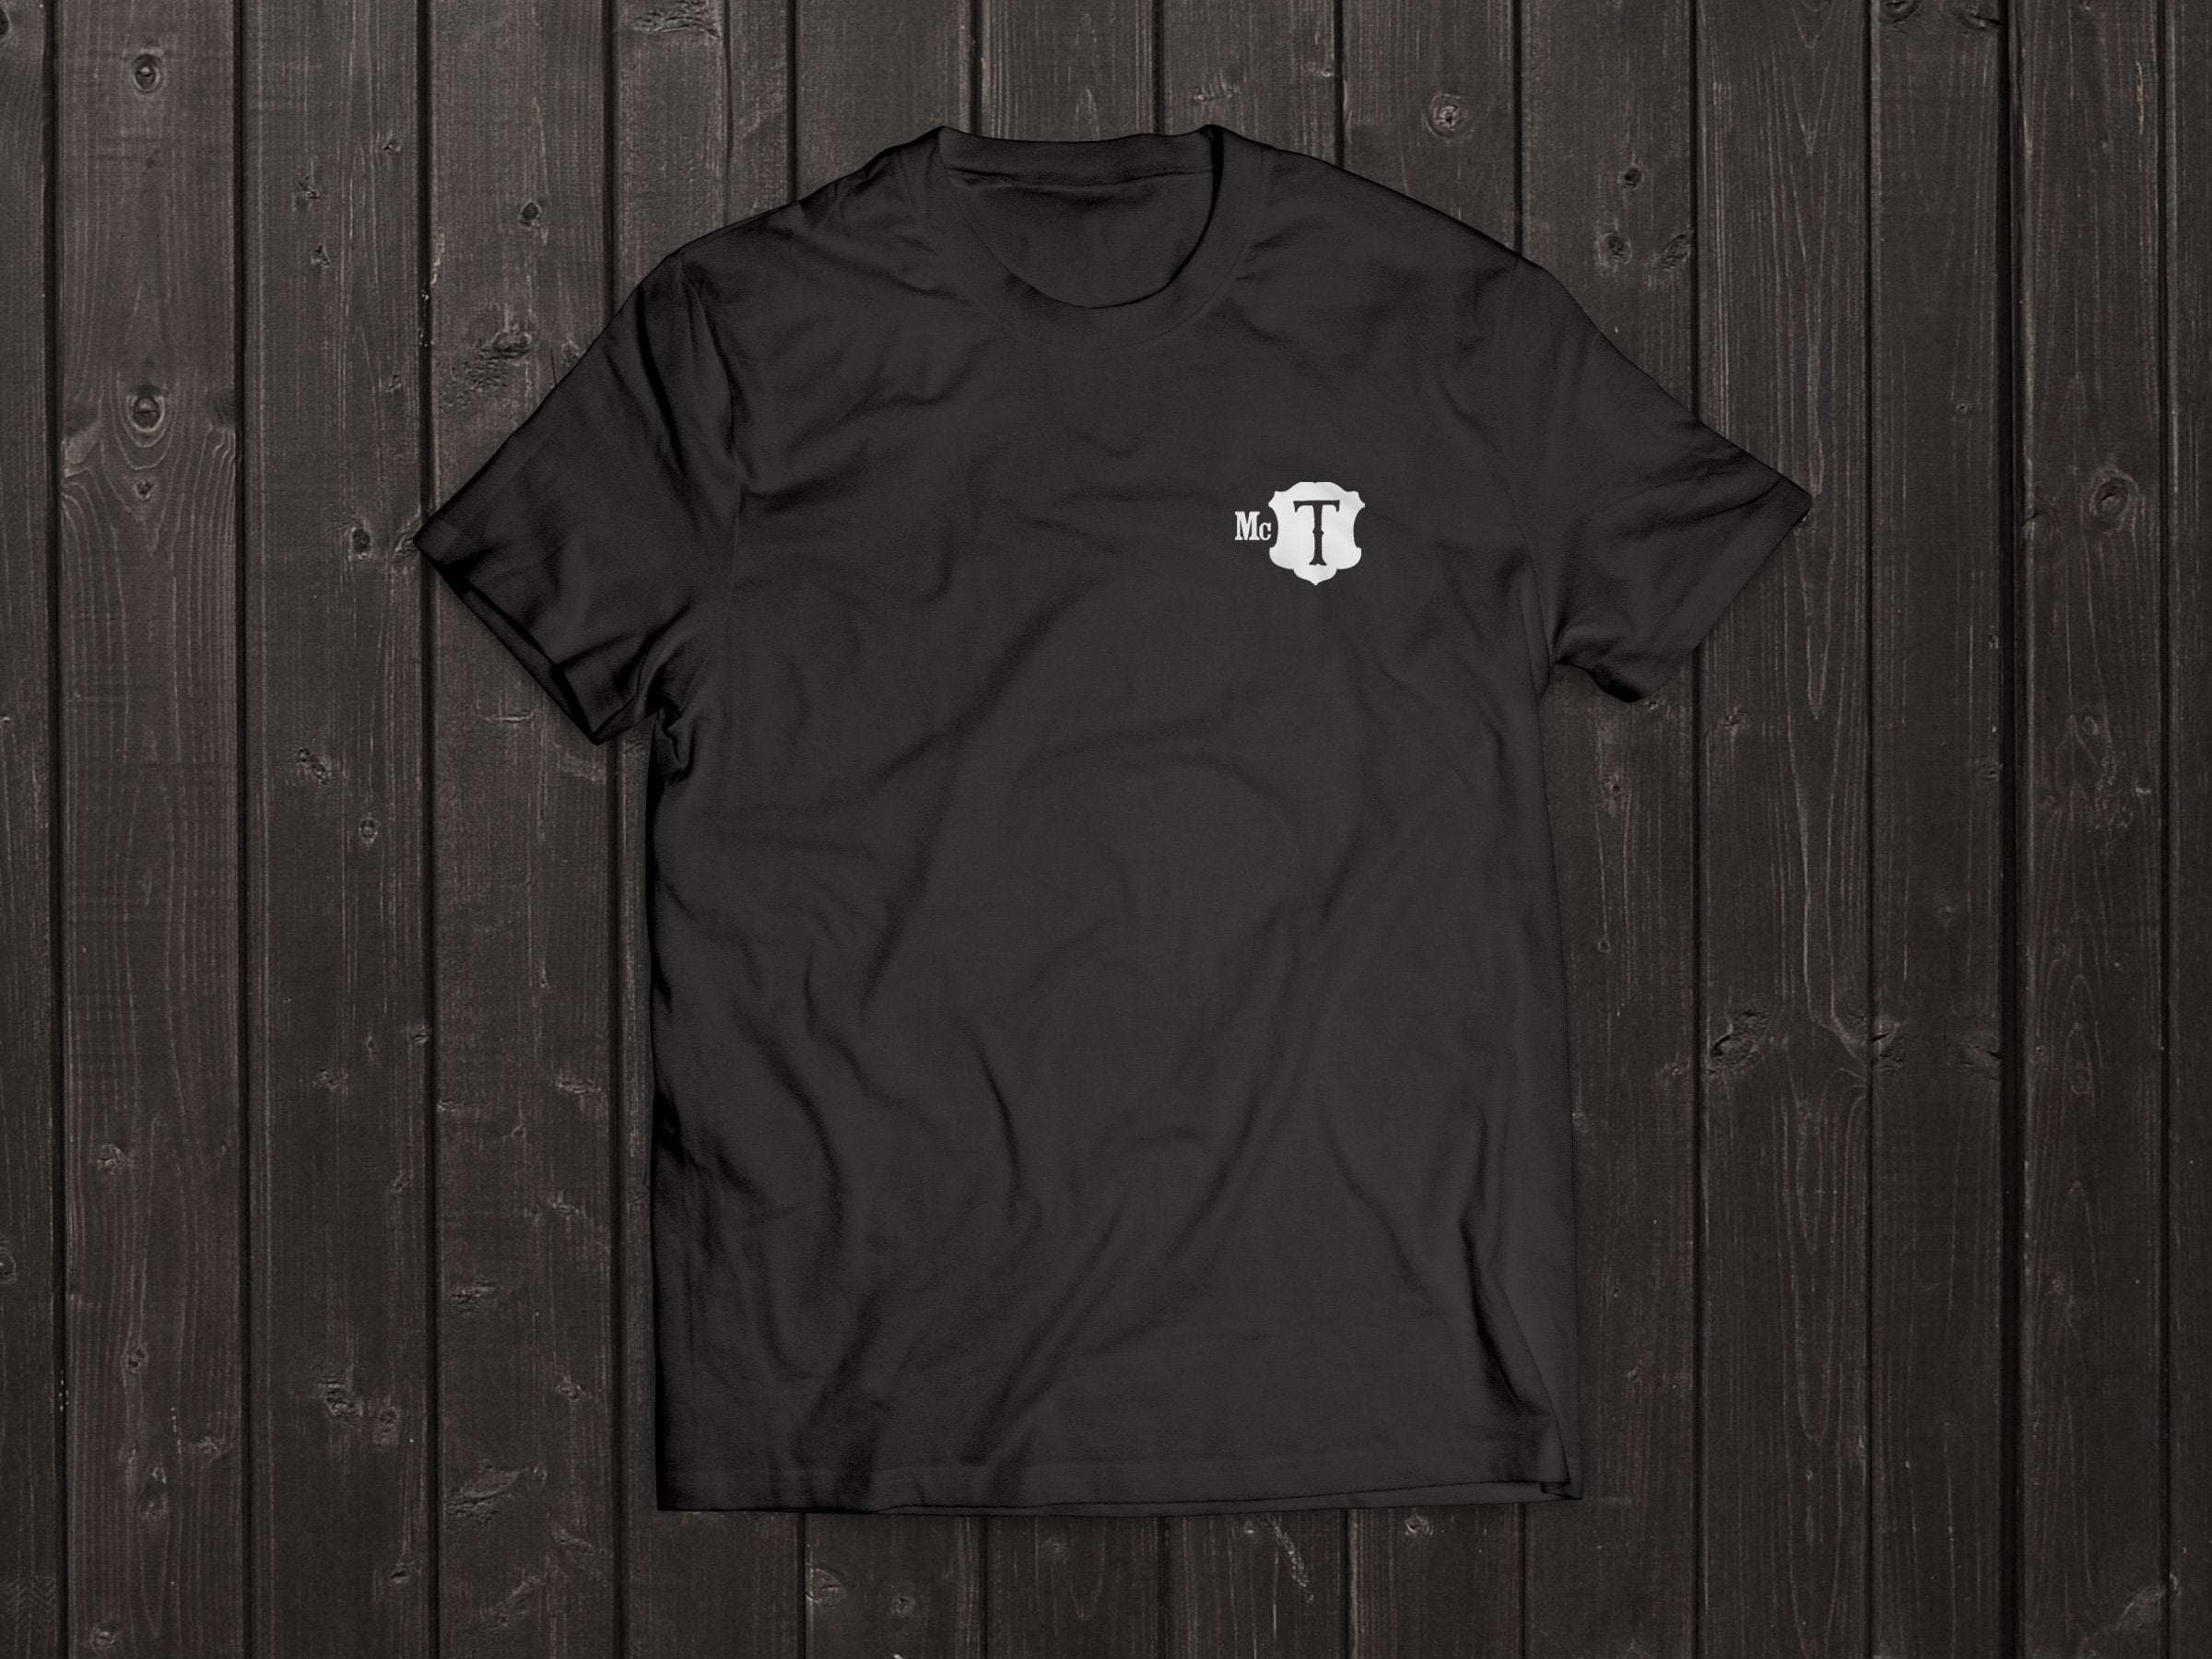 The McT Tony Singh T Shirt in Black